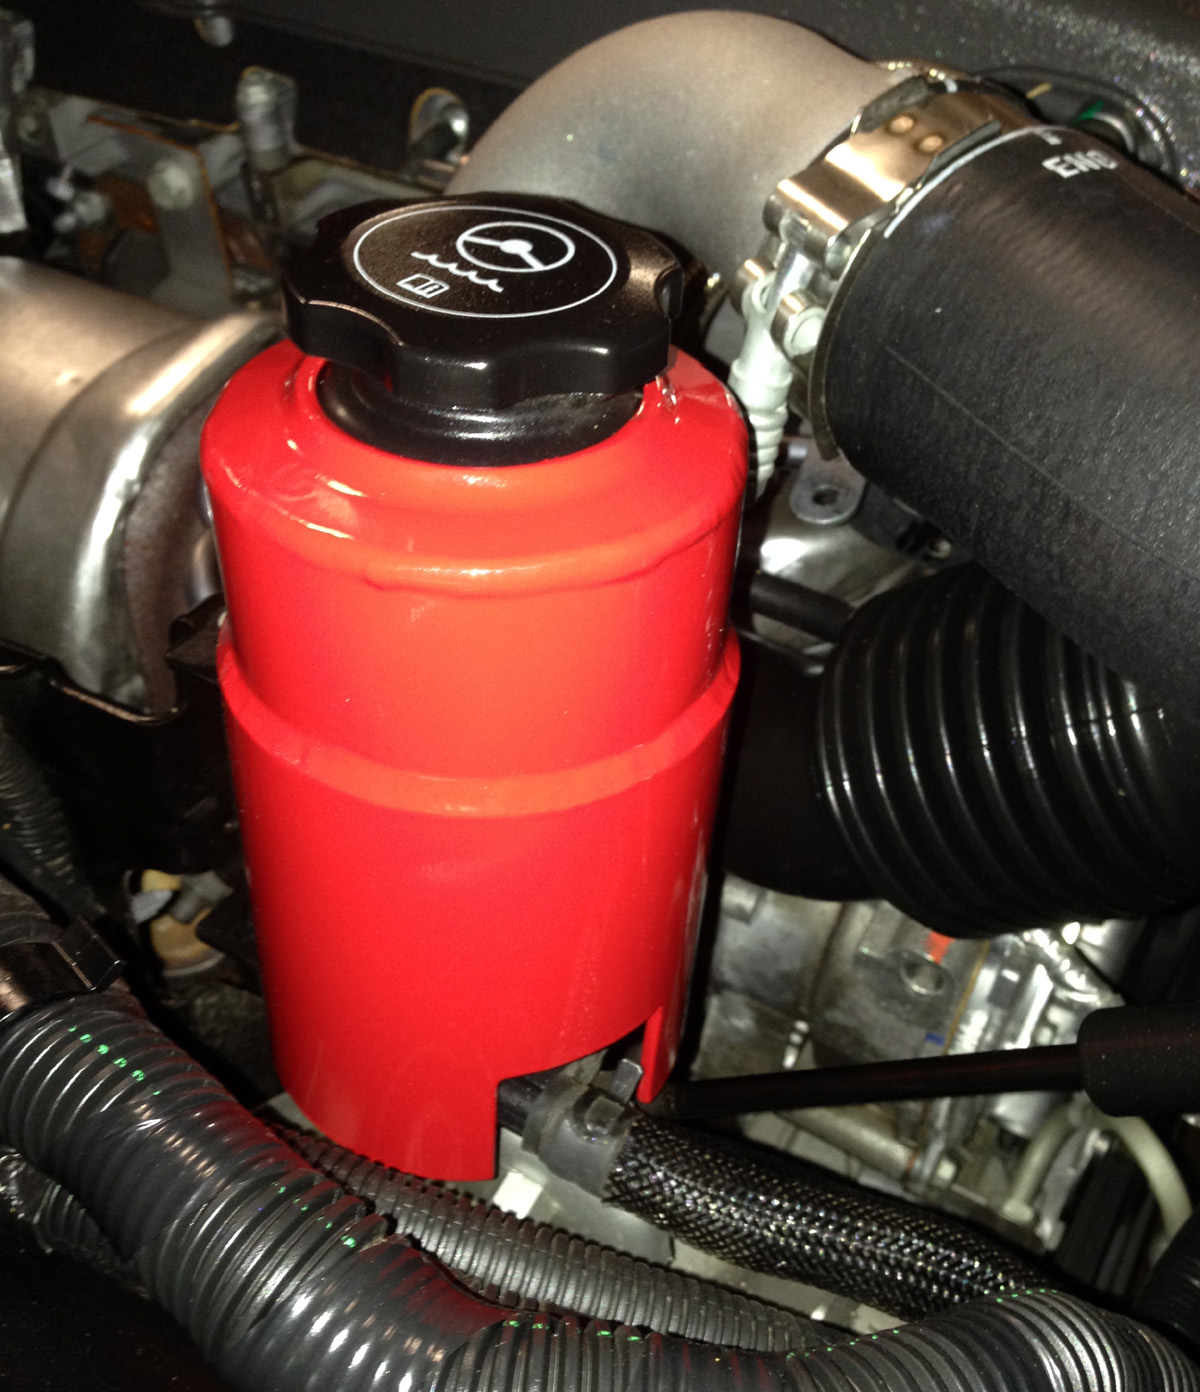 New product - WRP Kappa Power Steering Reservoir Cover ...